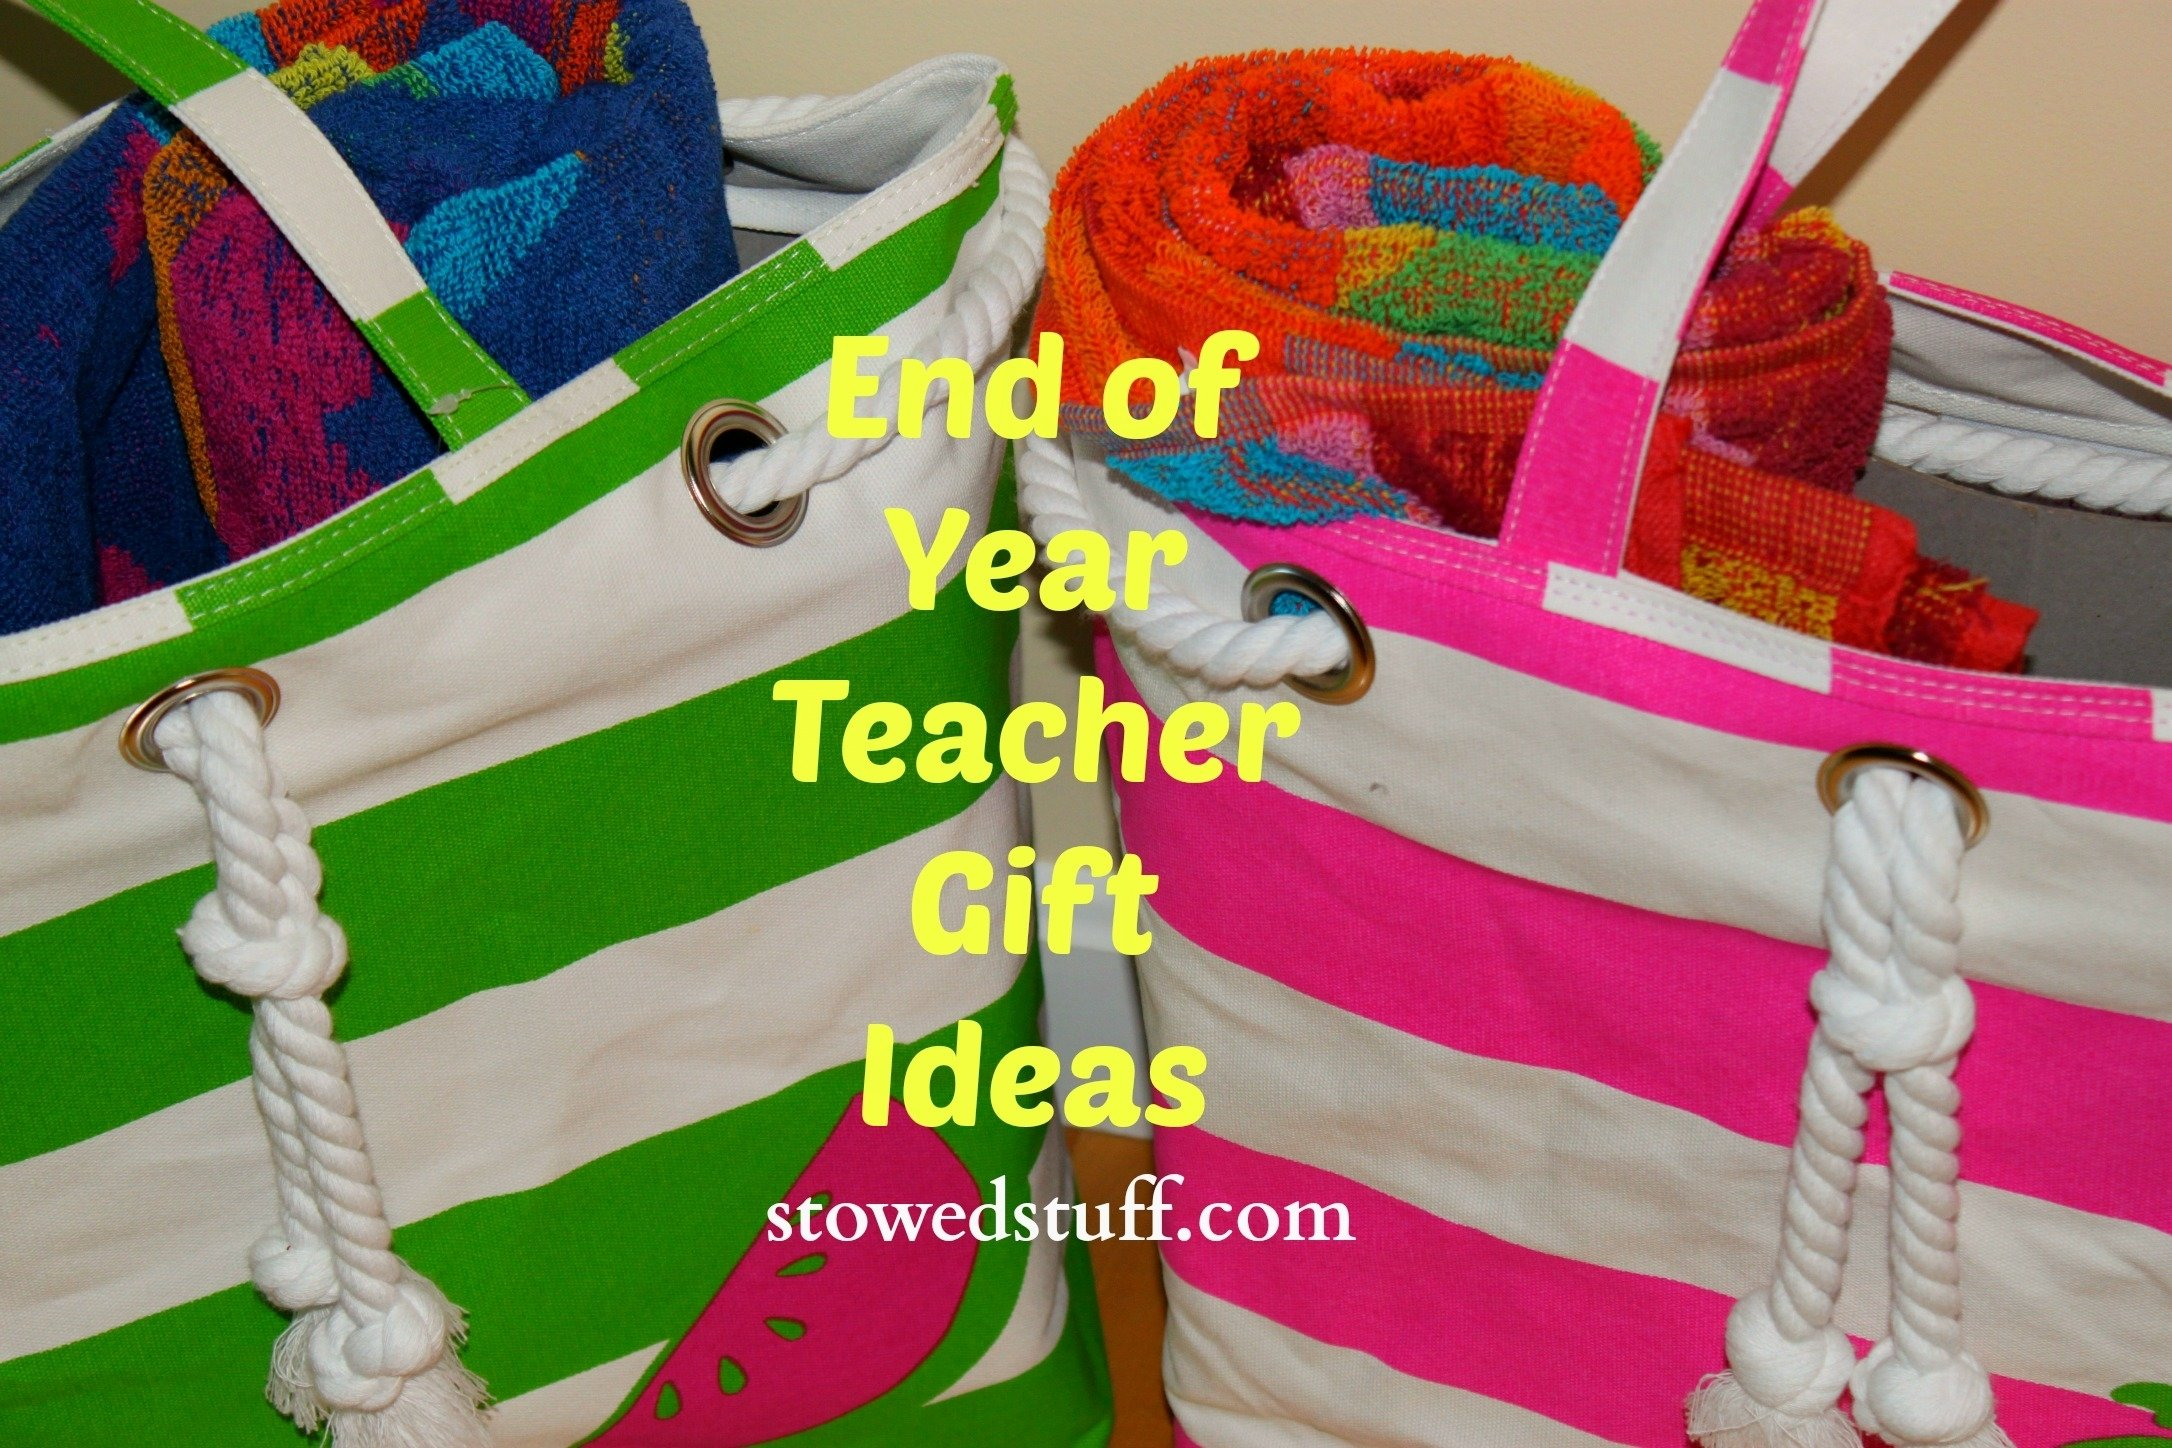 10 Amazing End Of Year Teacher Gift Ideas what to get teachers at the end of the school year stowed stuff 3 2020